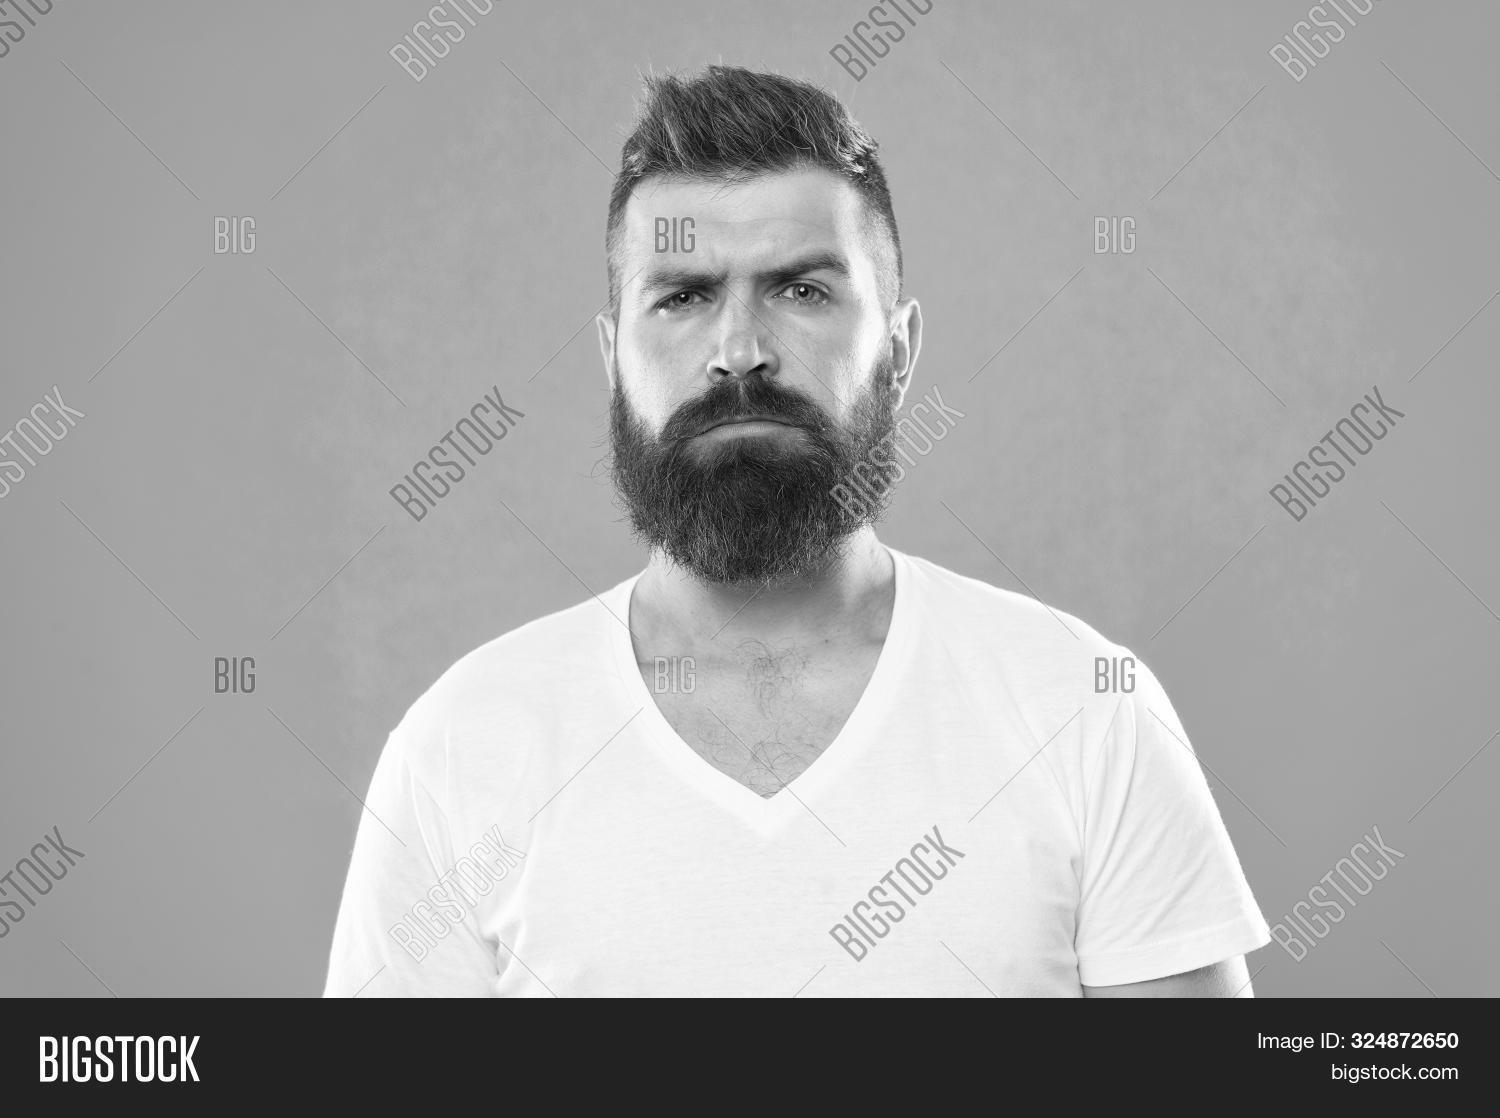 adult,appearance,background,barber,beard,bearded,beauty,brutal,brutality,care,casual,caucasian,concept,confident,face,fashion,fashionable,guy,haircut,hairdresser,handsome,hipster,lumbersexual,macho,maintain,male,man,masculine,masculinity,model,mustache,salon,strict,style,stylish,tips,turquoise,unshaven,wax,young